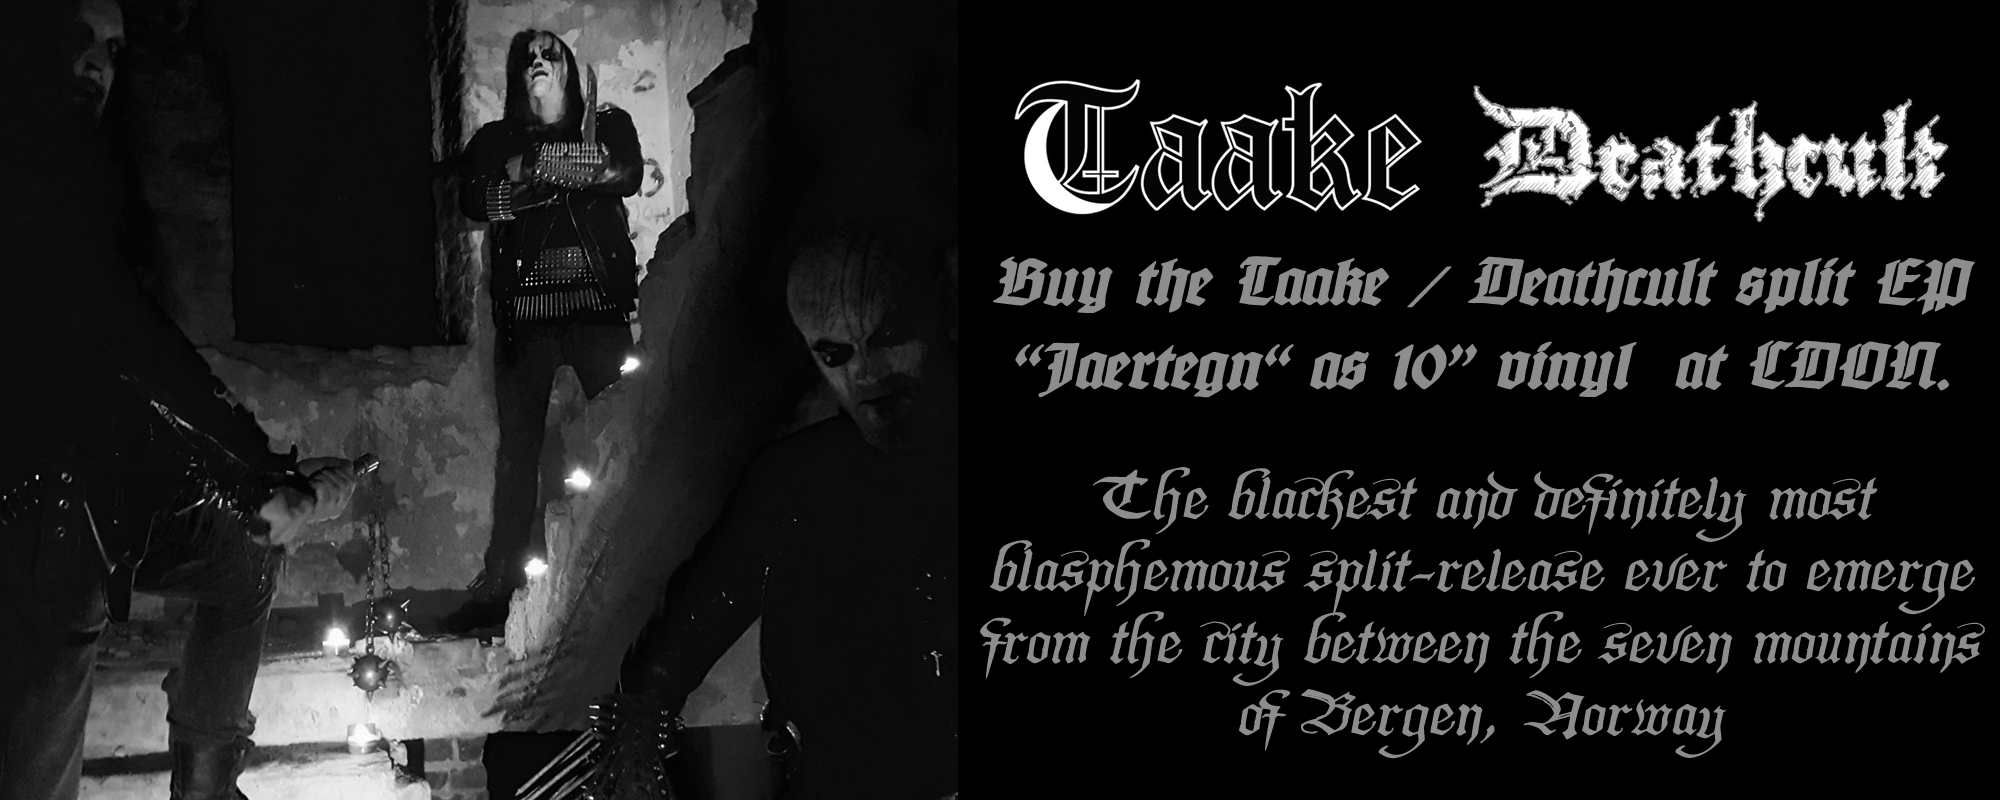 "Buy the Taake / Deathcult split EP  ""Jaertegn"" as 10"" vinyl  at CDON."